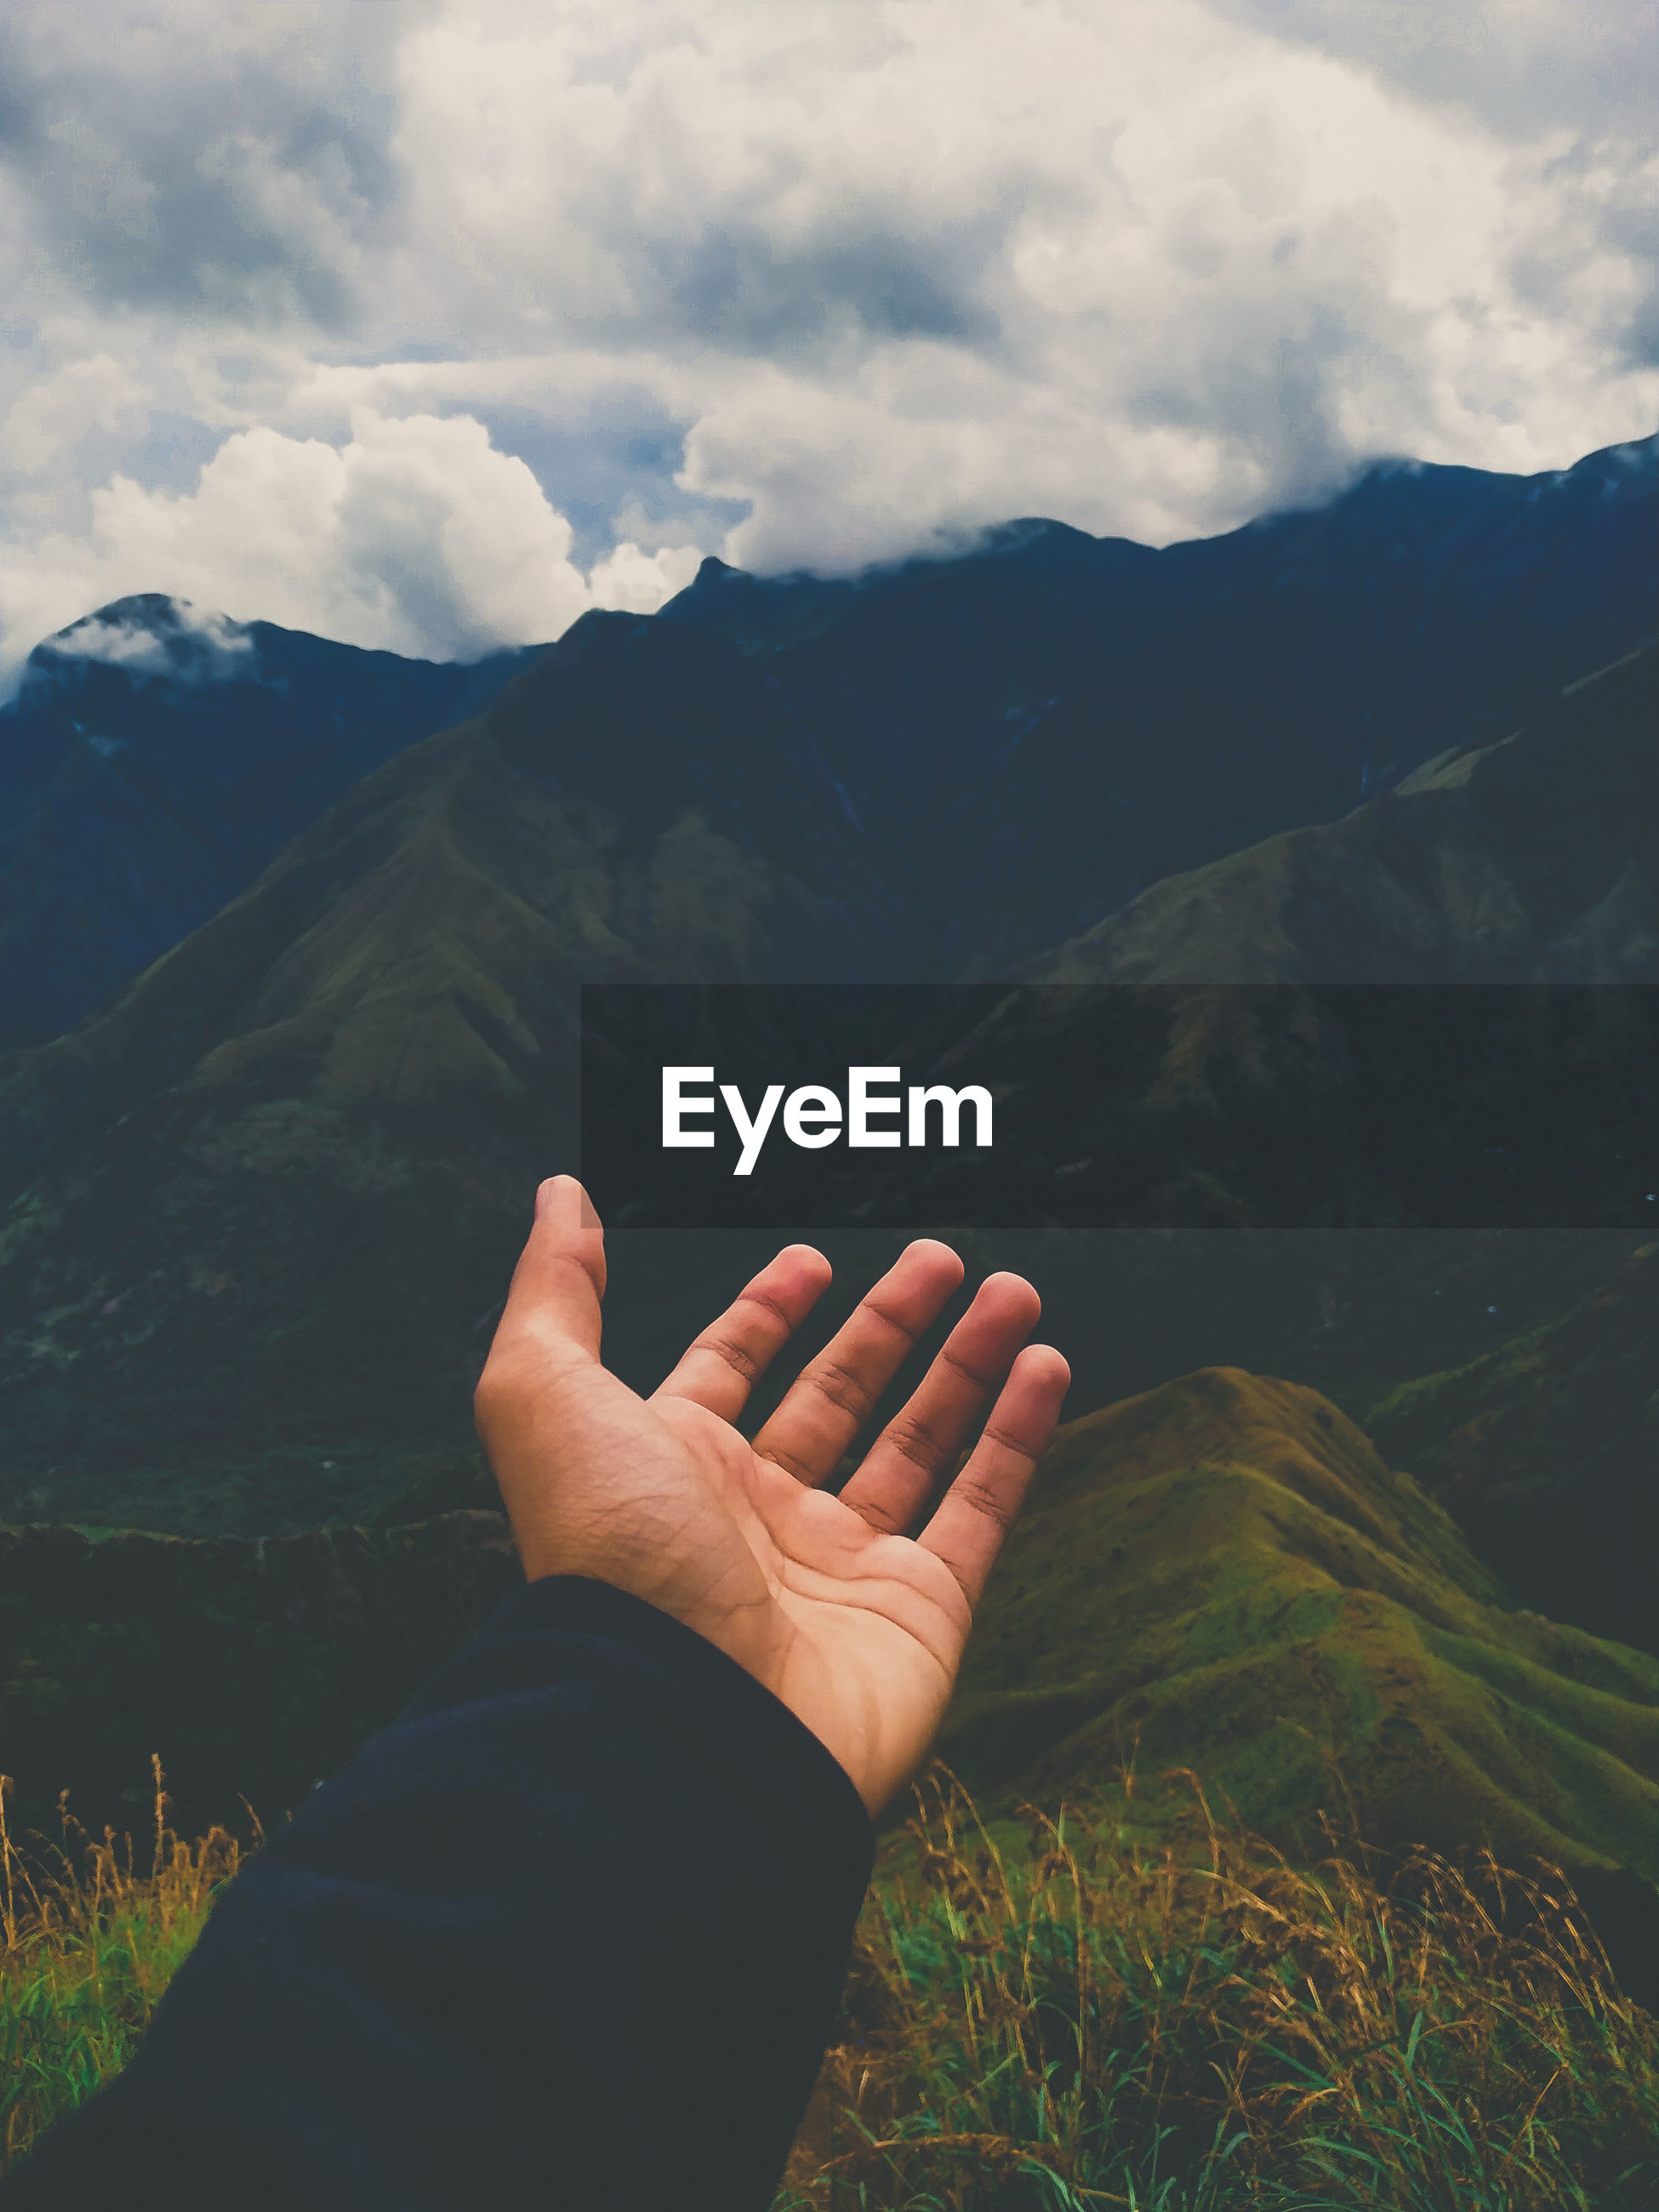 Cropped hand of person gesturing against mountains and sky